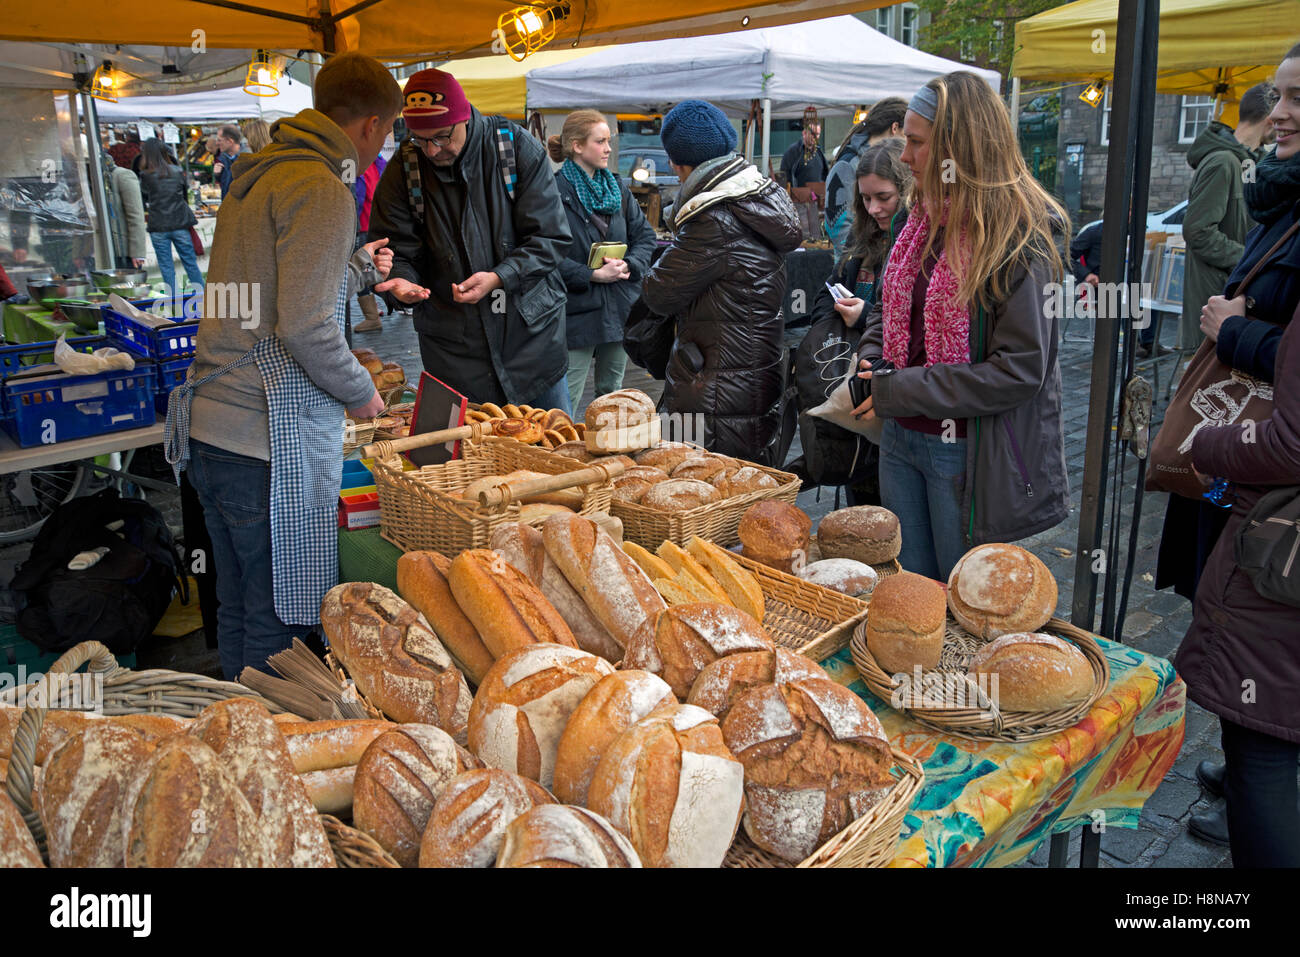 Artisan bread on sale at a stall in the Grassmarket, Edinburgh, Scotland, UK. - Stock Image